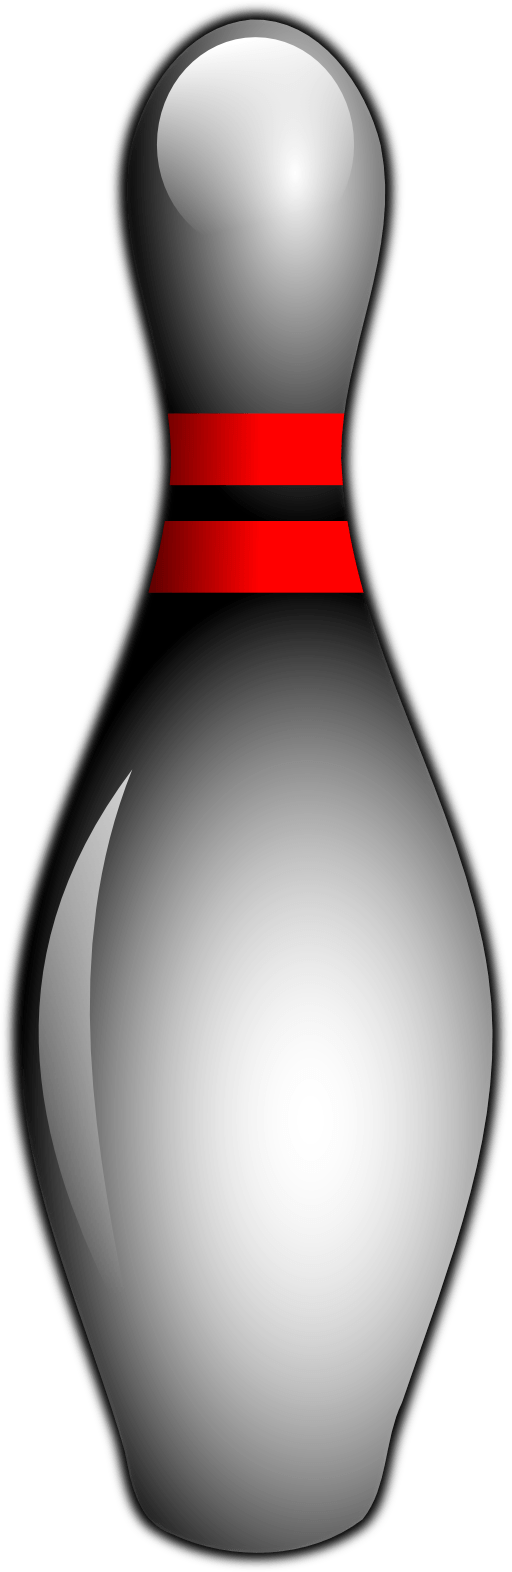 Bowling pin wearing crown clipart clip free library Bowling Pin Cartoon Group (63+) clip free library